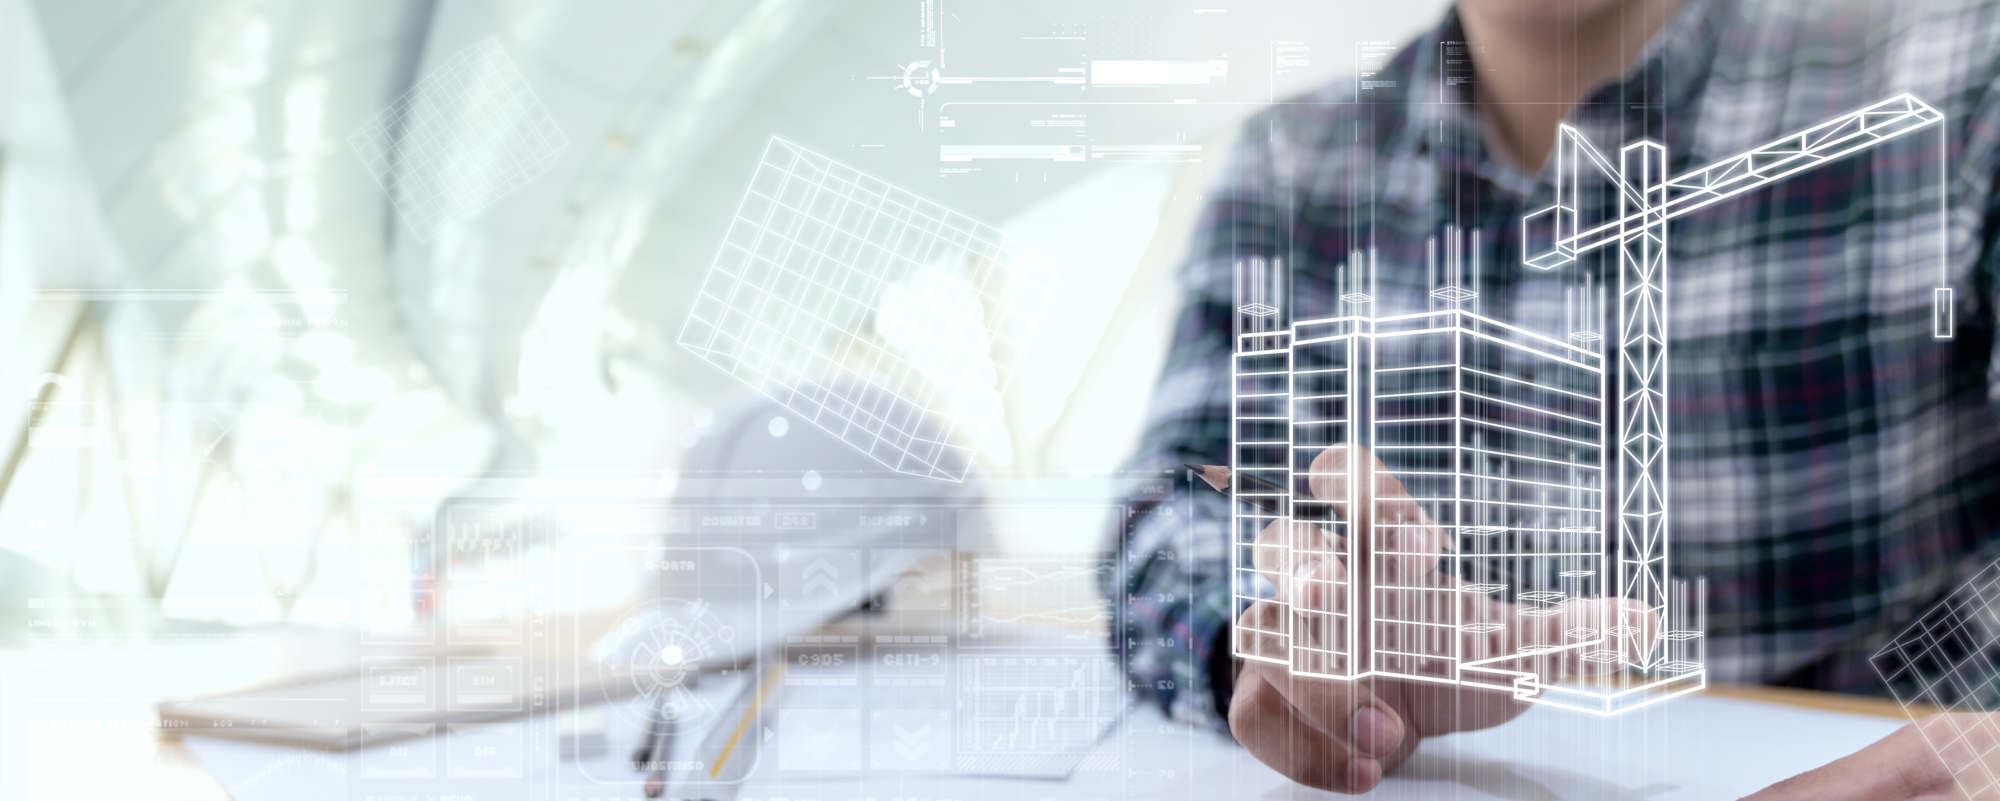 How BIM is affecting facility management worldwide